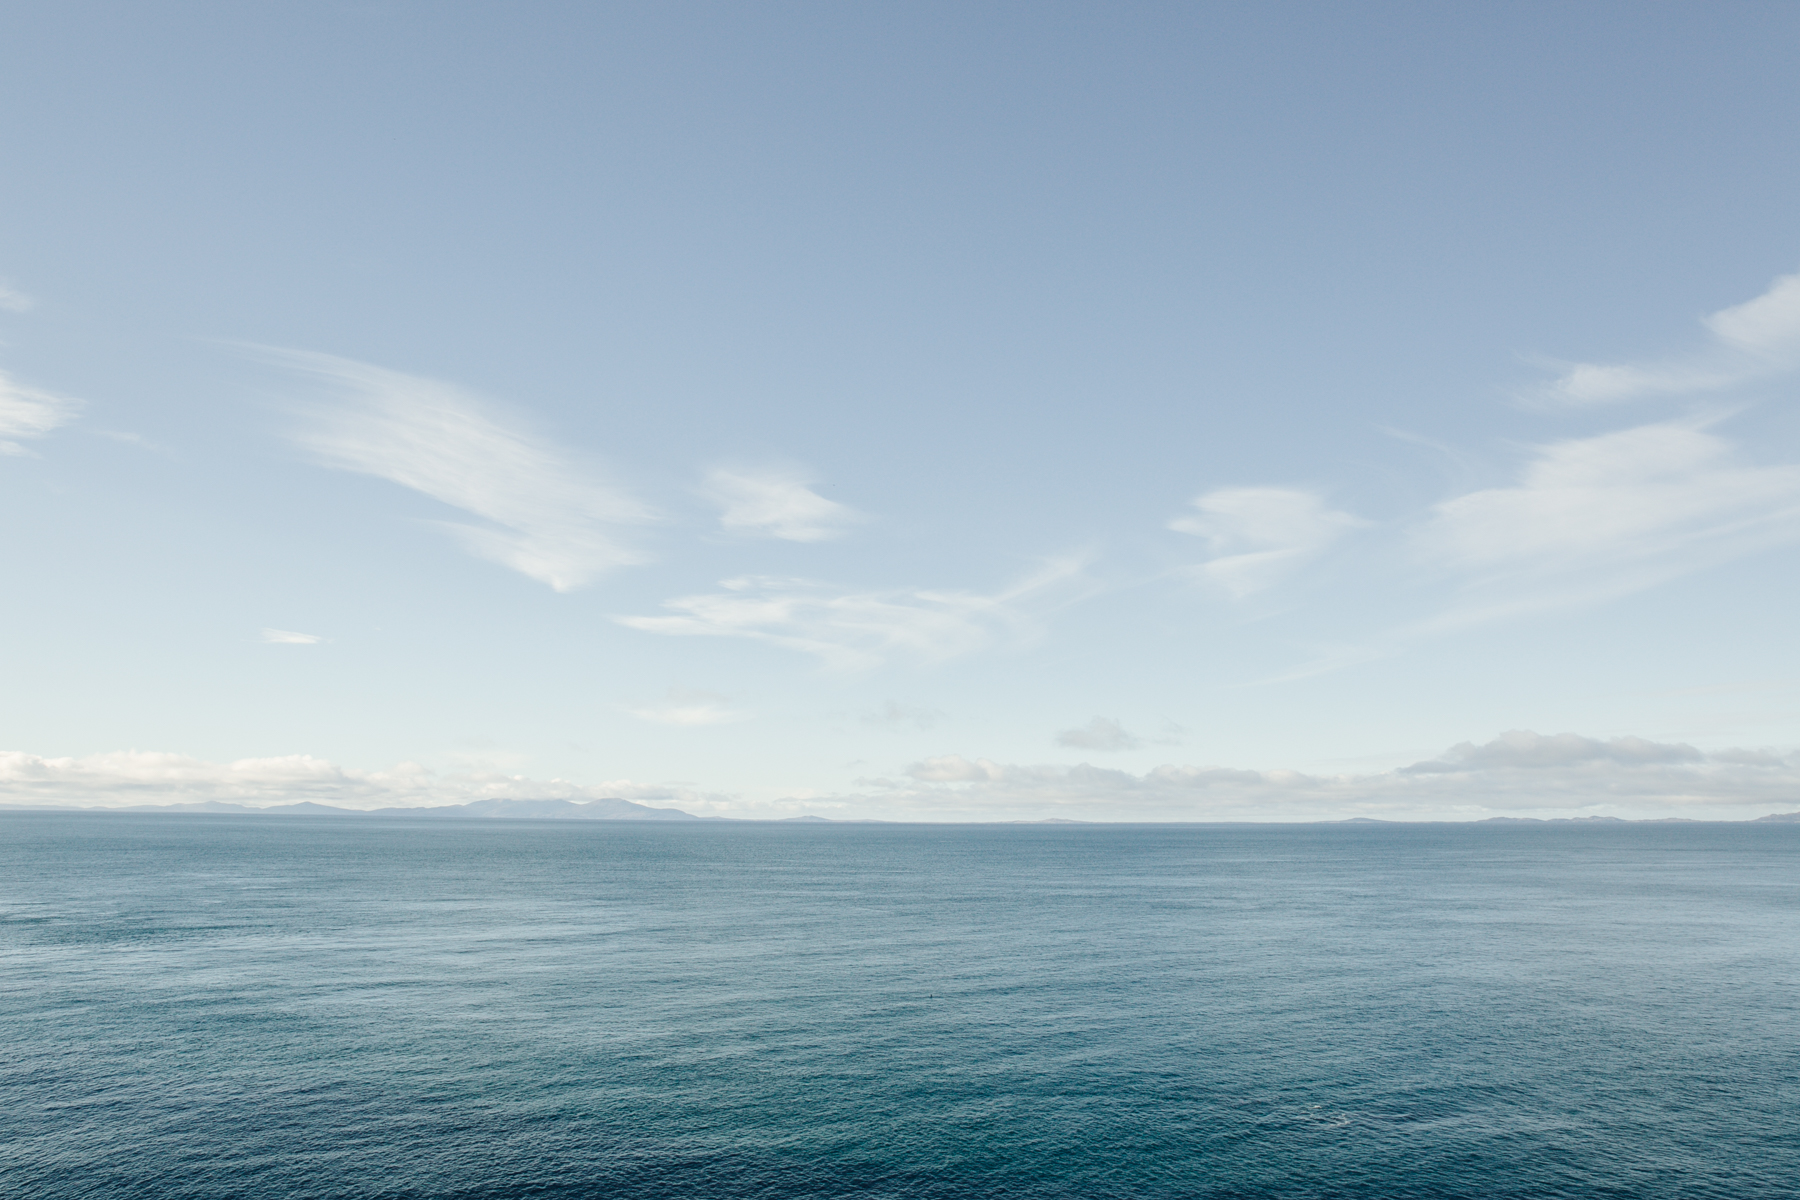 Looking towards North Uist from Neist Point in Skye.